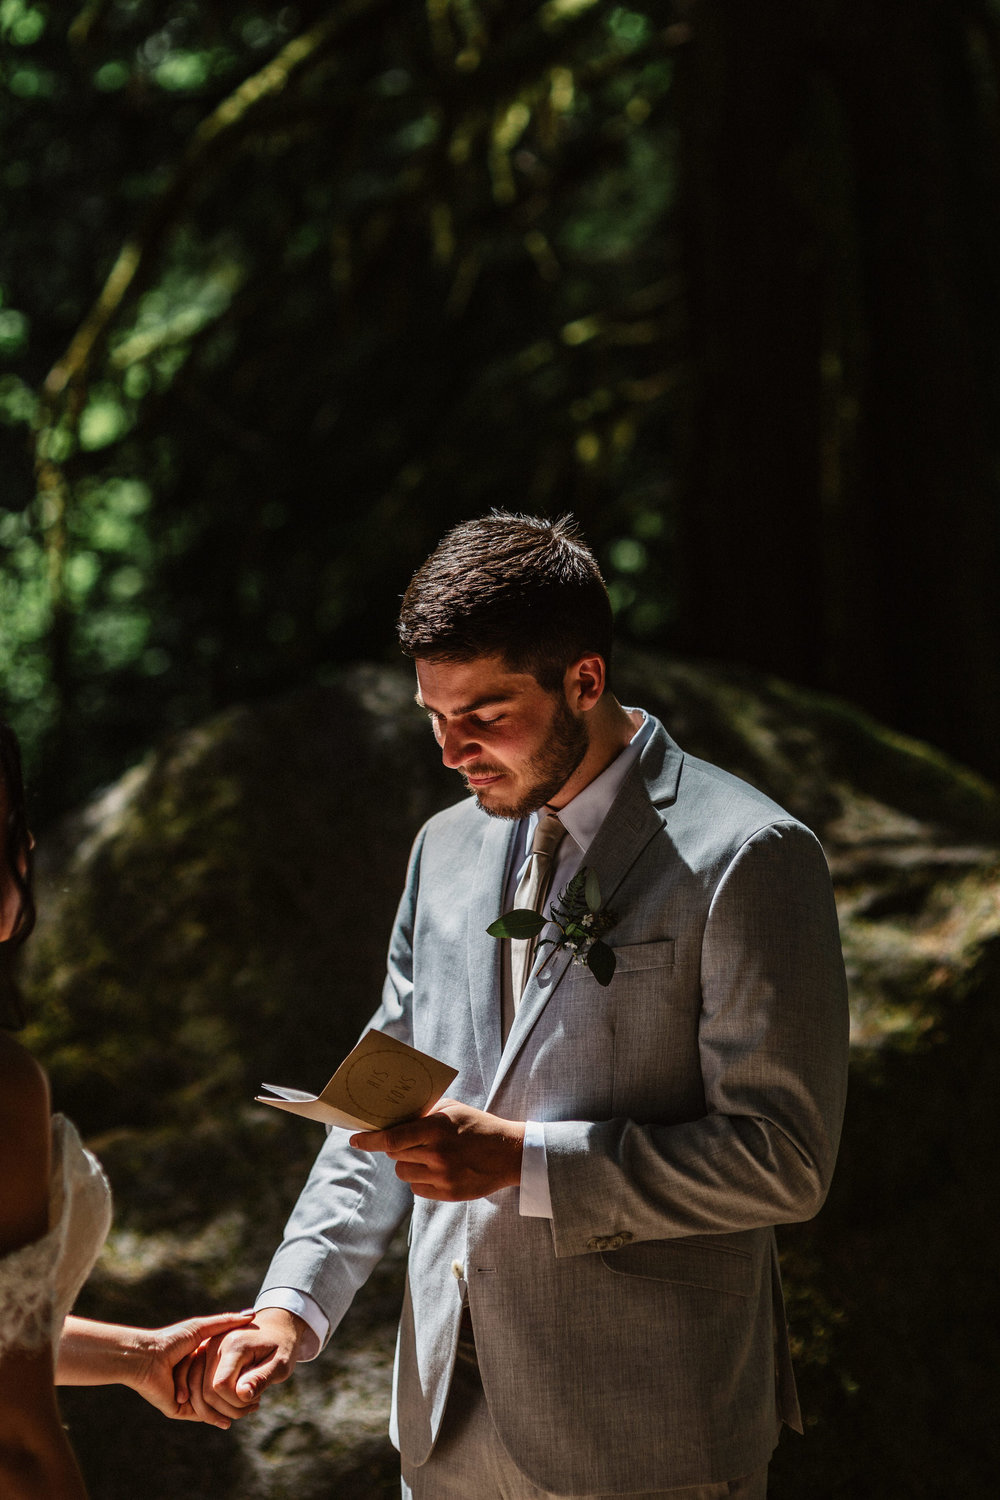 MT Hood Wildwood elopement wedding oregon portland photography0044.JPG